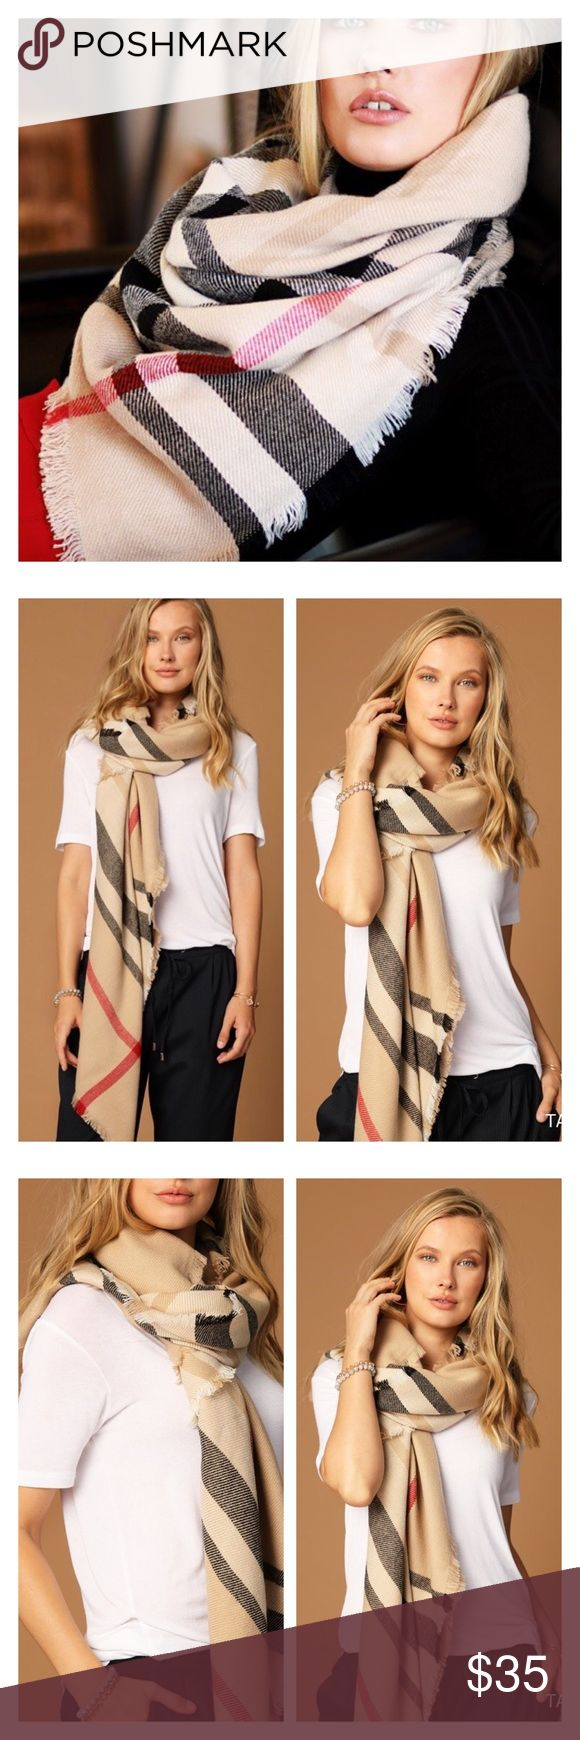 """New Arrival- Vail Classic Blanket Scarf Super soft and comfortable classic plaid tartan scarf. Blanket scarf. Look chic with this baby on. Timeless. 100% soft and smooth Acrylic. 49""""X49"""". Brand new. Price is firm unless bundled. Thank you! Accessories Scarves & Wraps"""